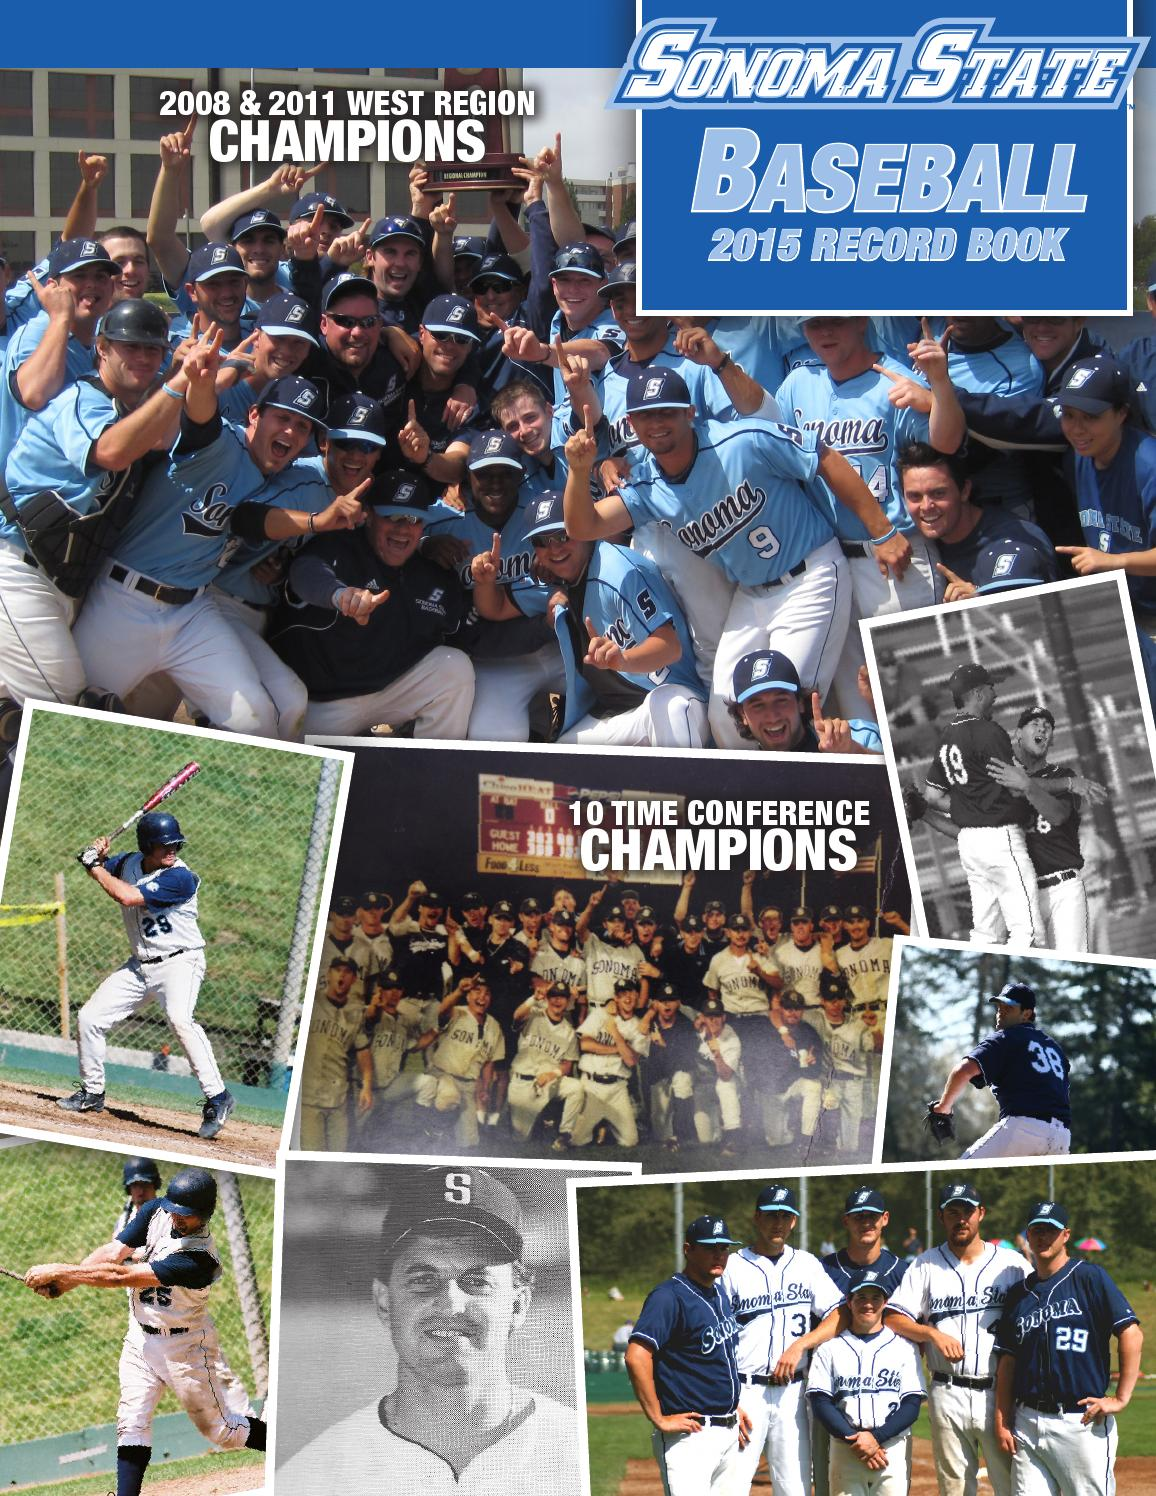 2012 michigan state baseball record book by ben phlegar issuu